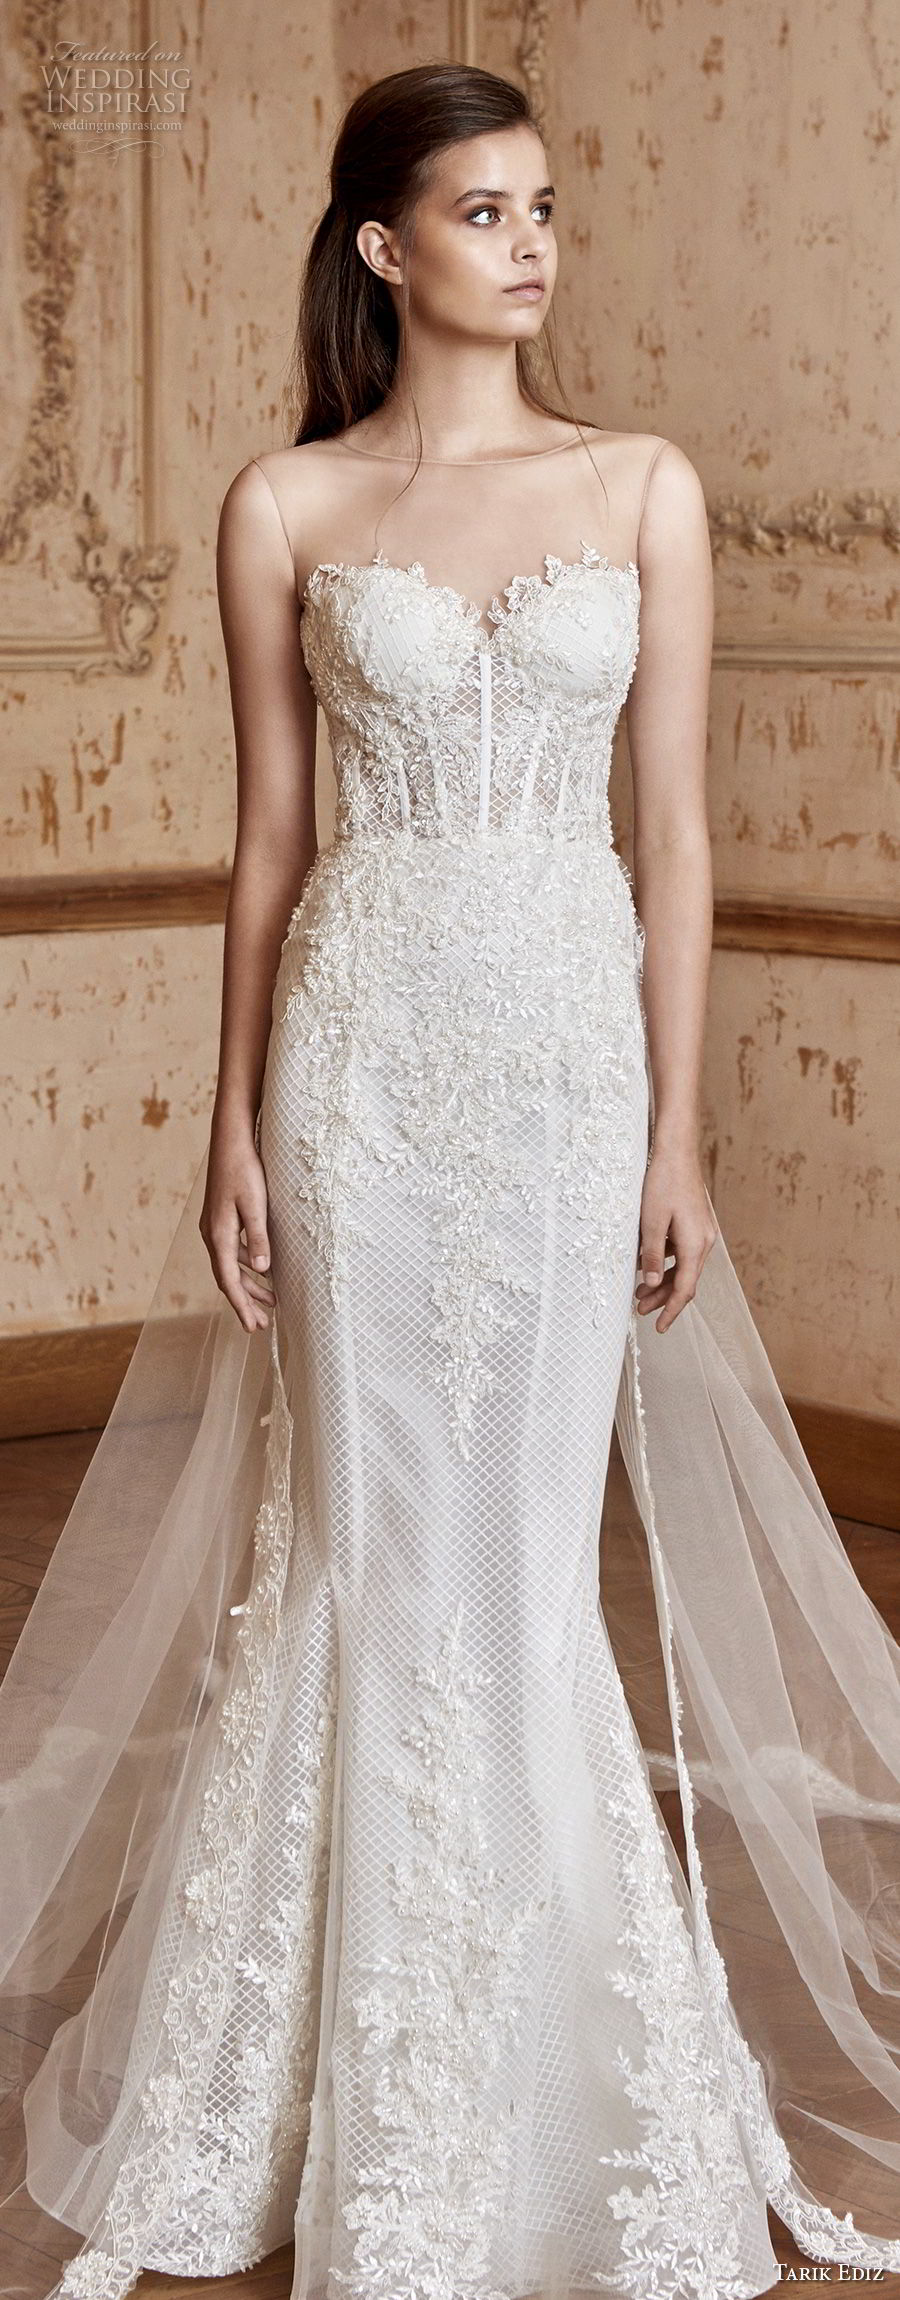 tarik ediz 2017 bridal sleeveless illusion bateau sweetheart neckline full embellishment elegant mermaid wedding dress long sheer train (14) lv